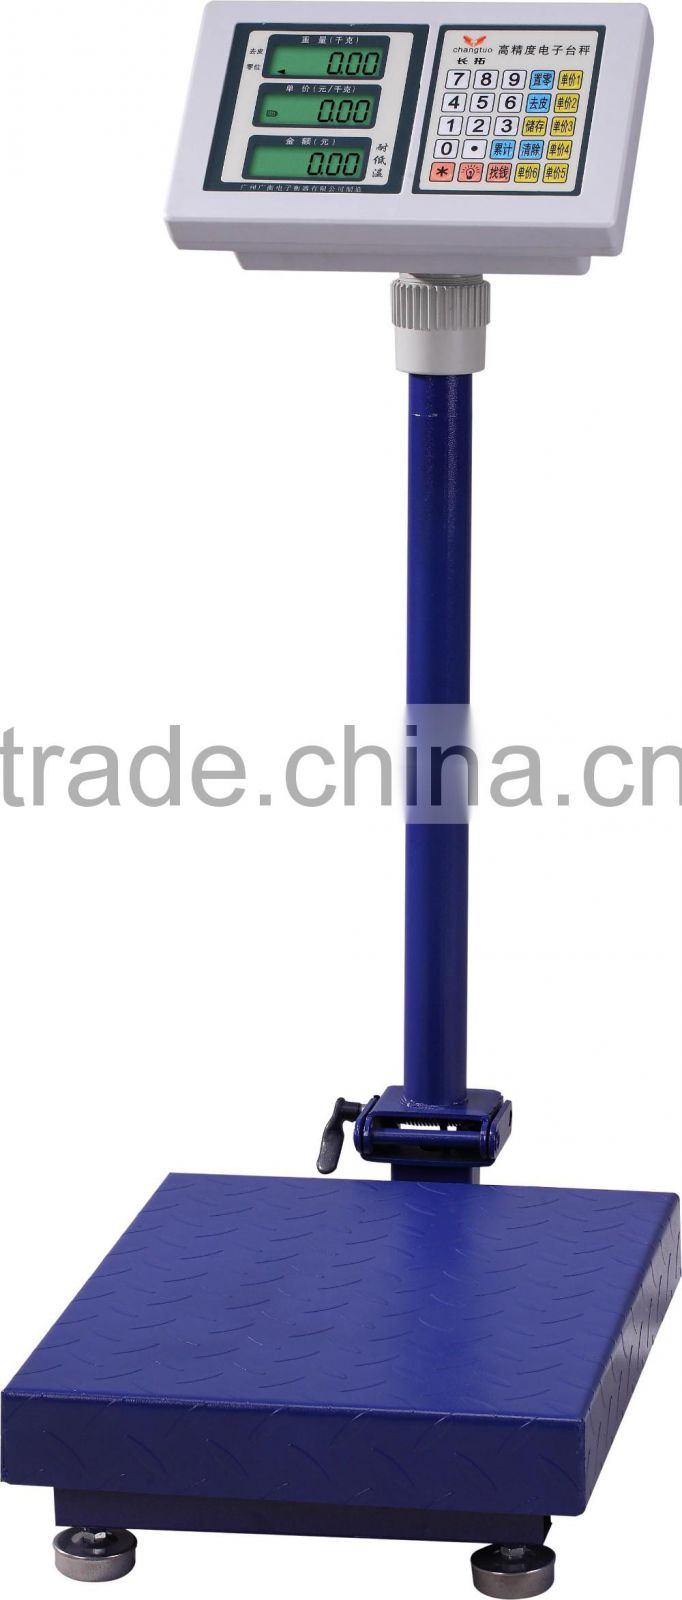 300kg scale electronic weighing balancer / load cell digital